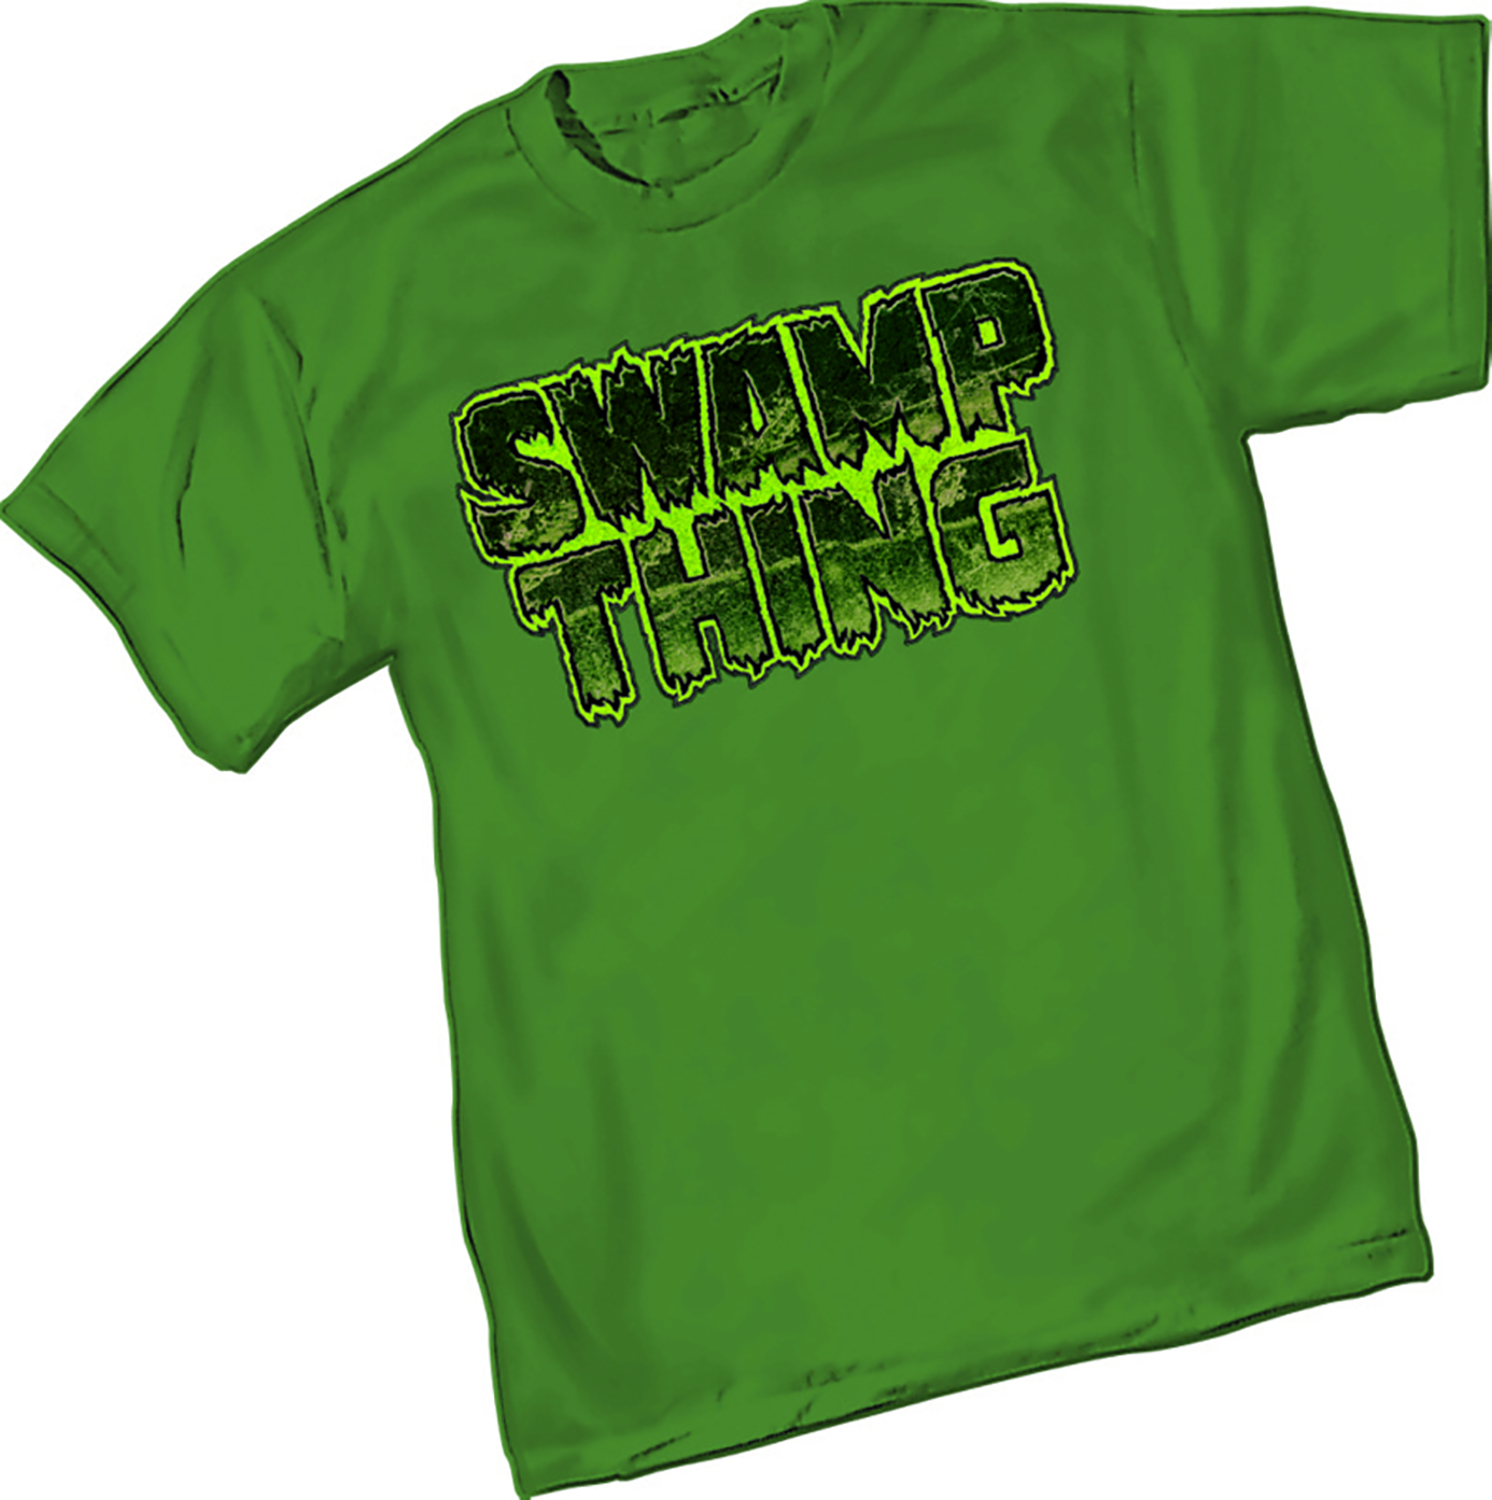 SWAMP THING LOGO T/S XL